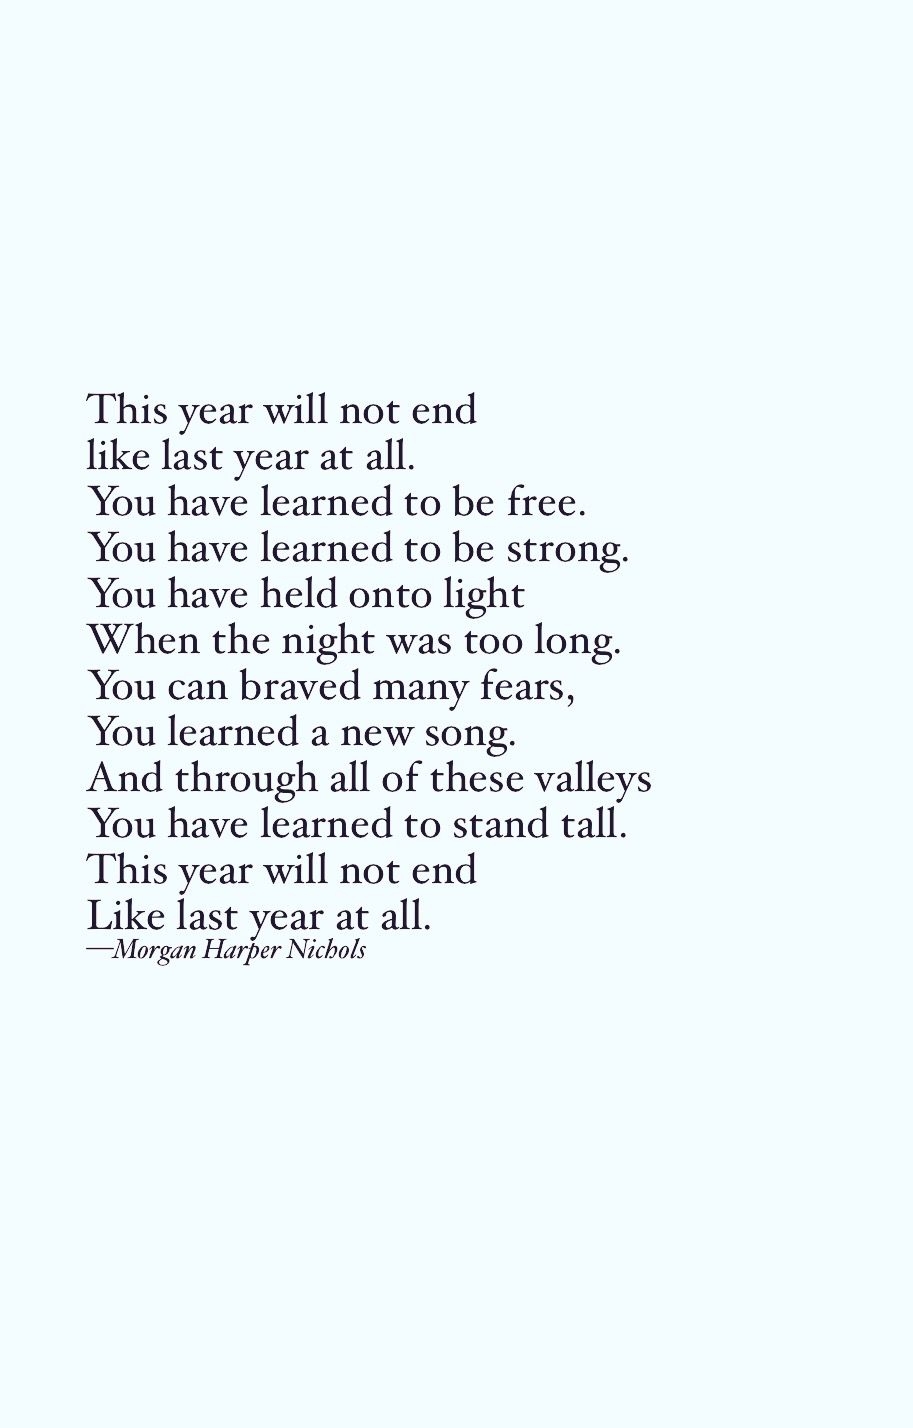 A Quote For A Year Ending, A New Year ////